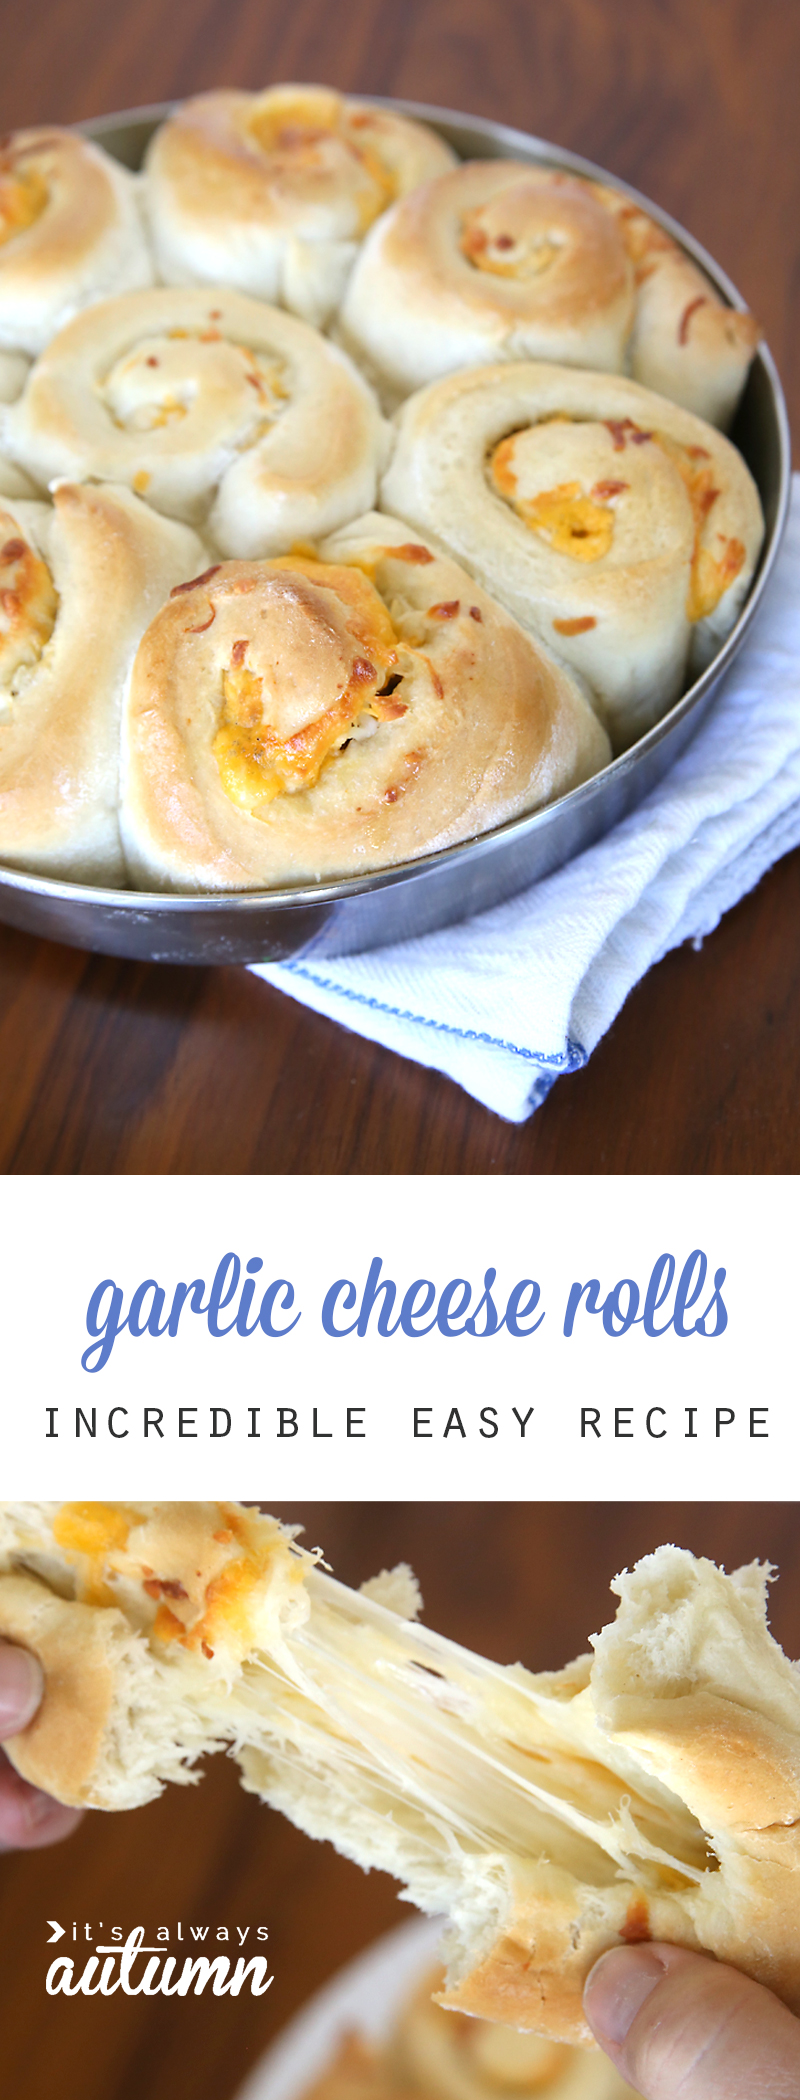 garlic cheese rolls in a round pan; hands pulling apart a garlic cheese roll